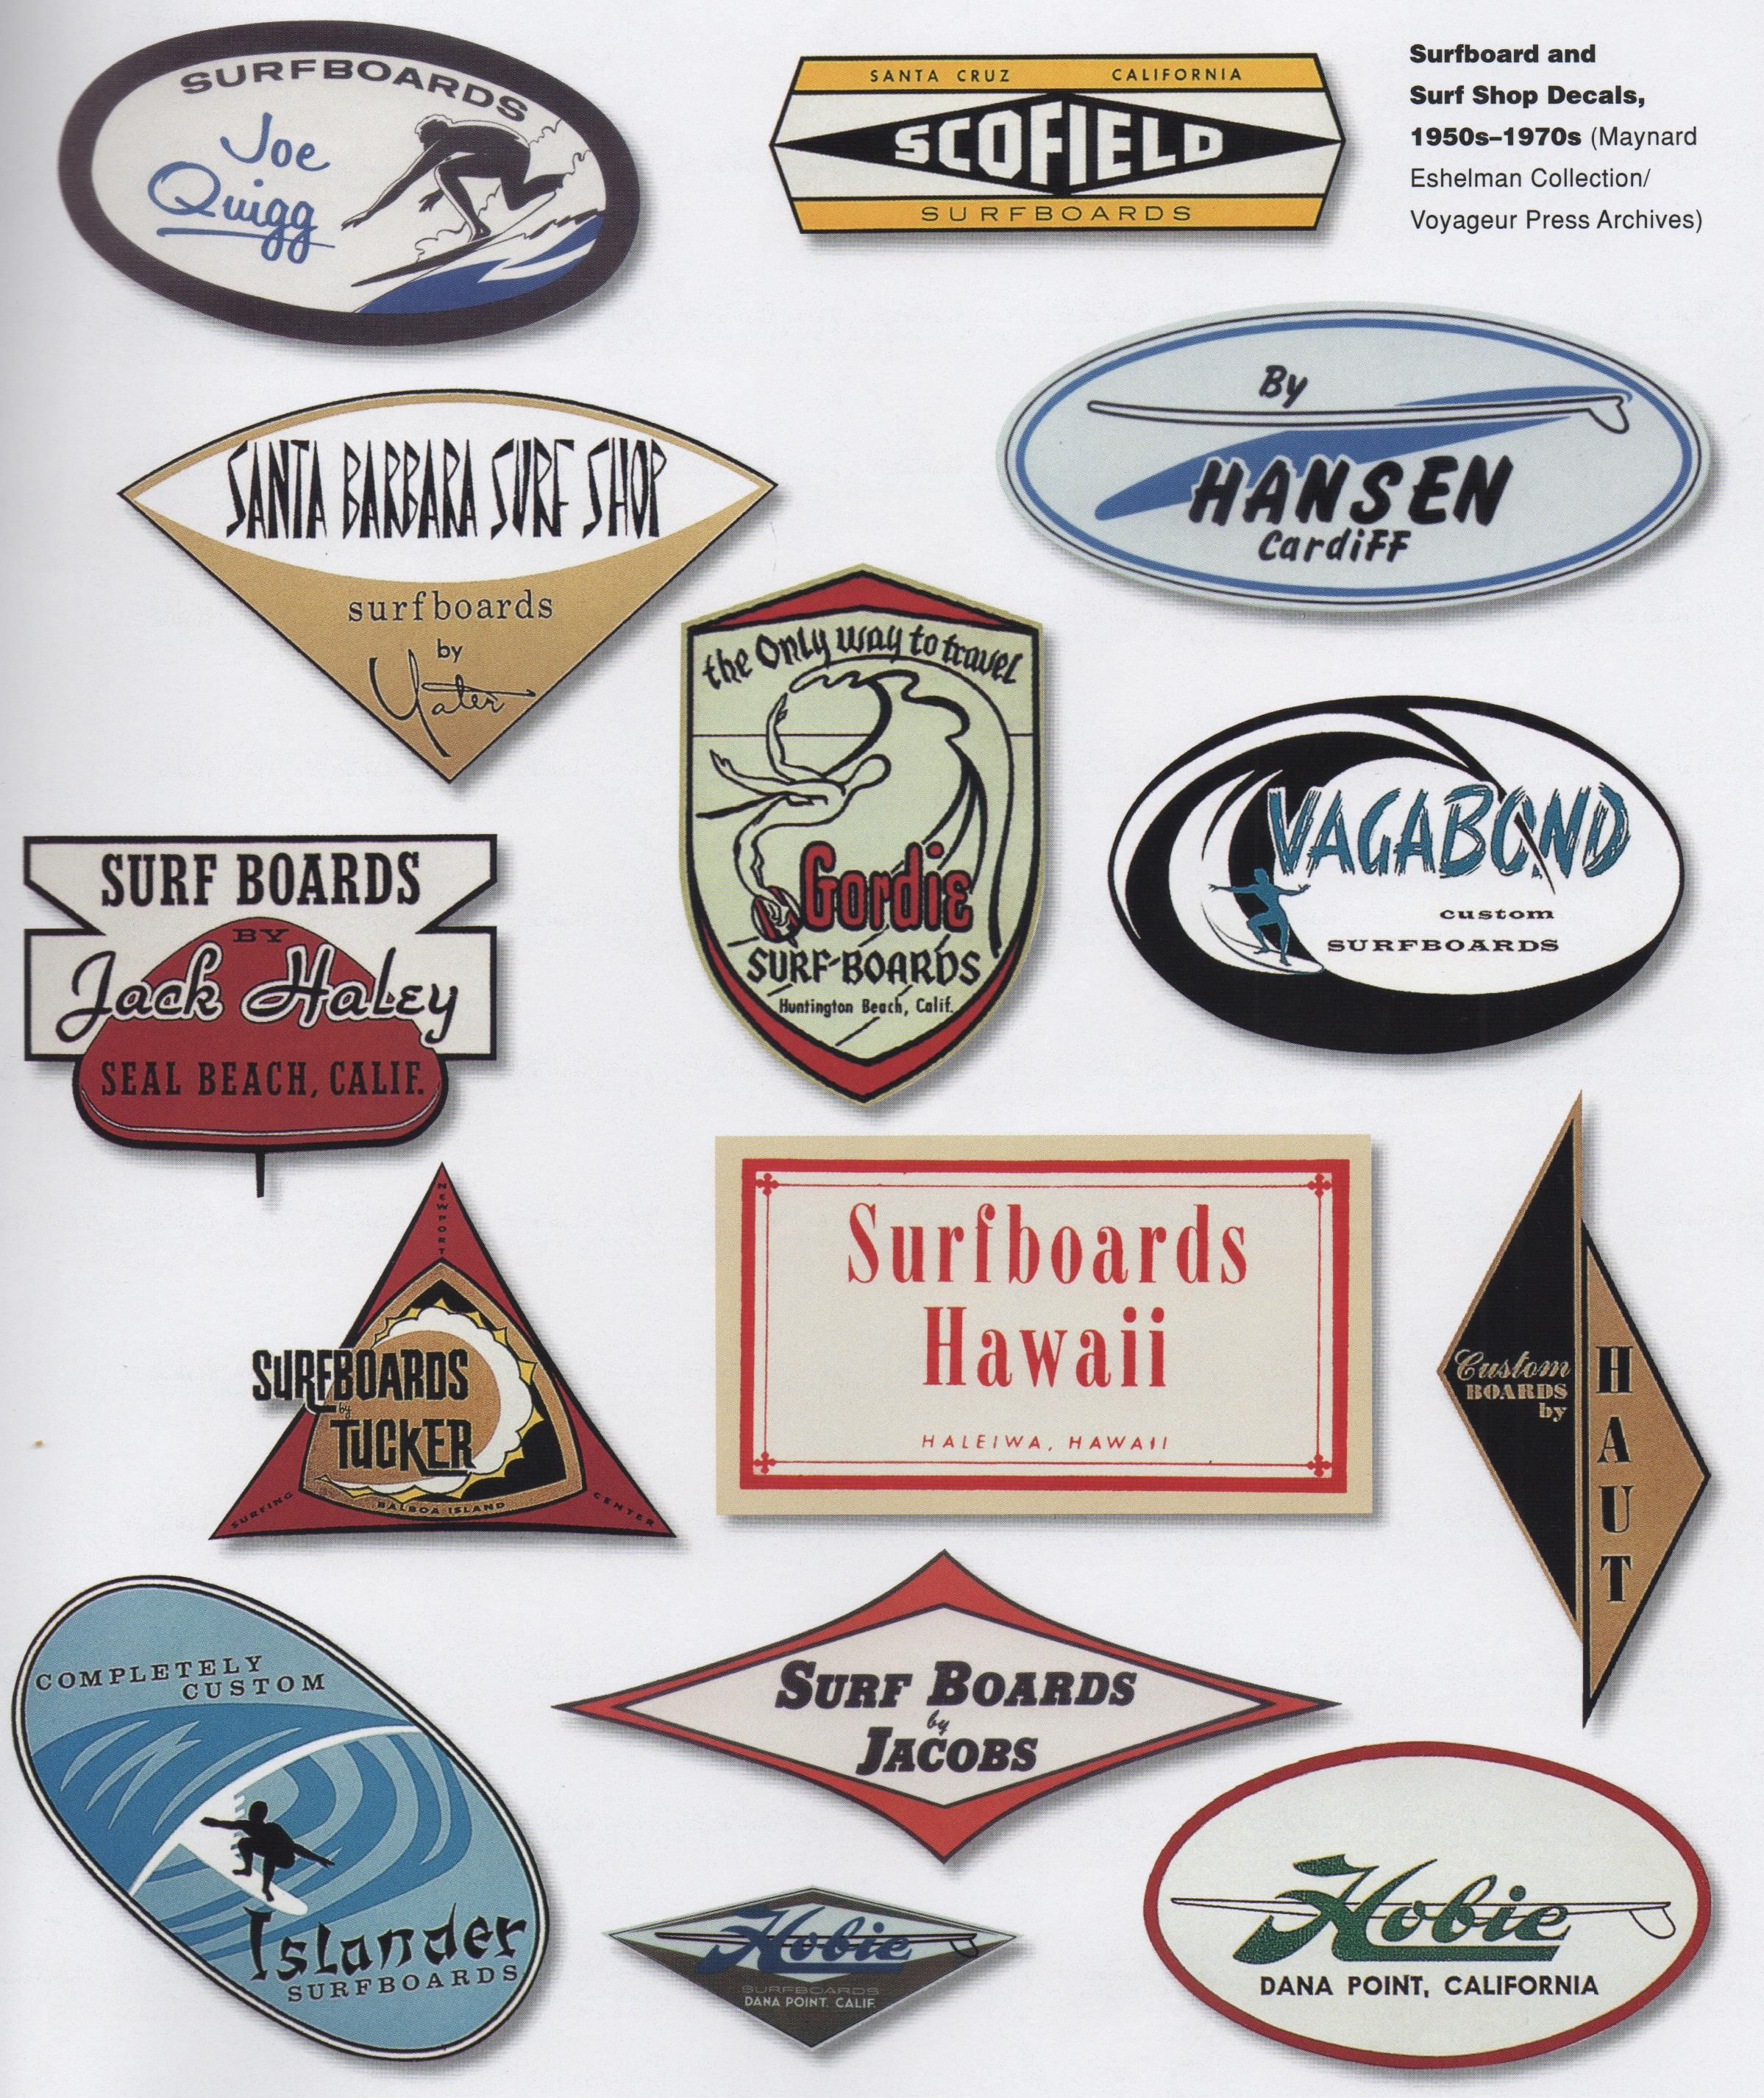 Pin By Geoff Hagins On Surfing A Collection Of Old Photos Ads Vintage Surfboards Surf Stickers Surf Logo